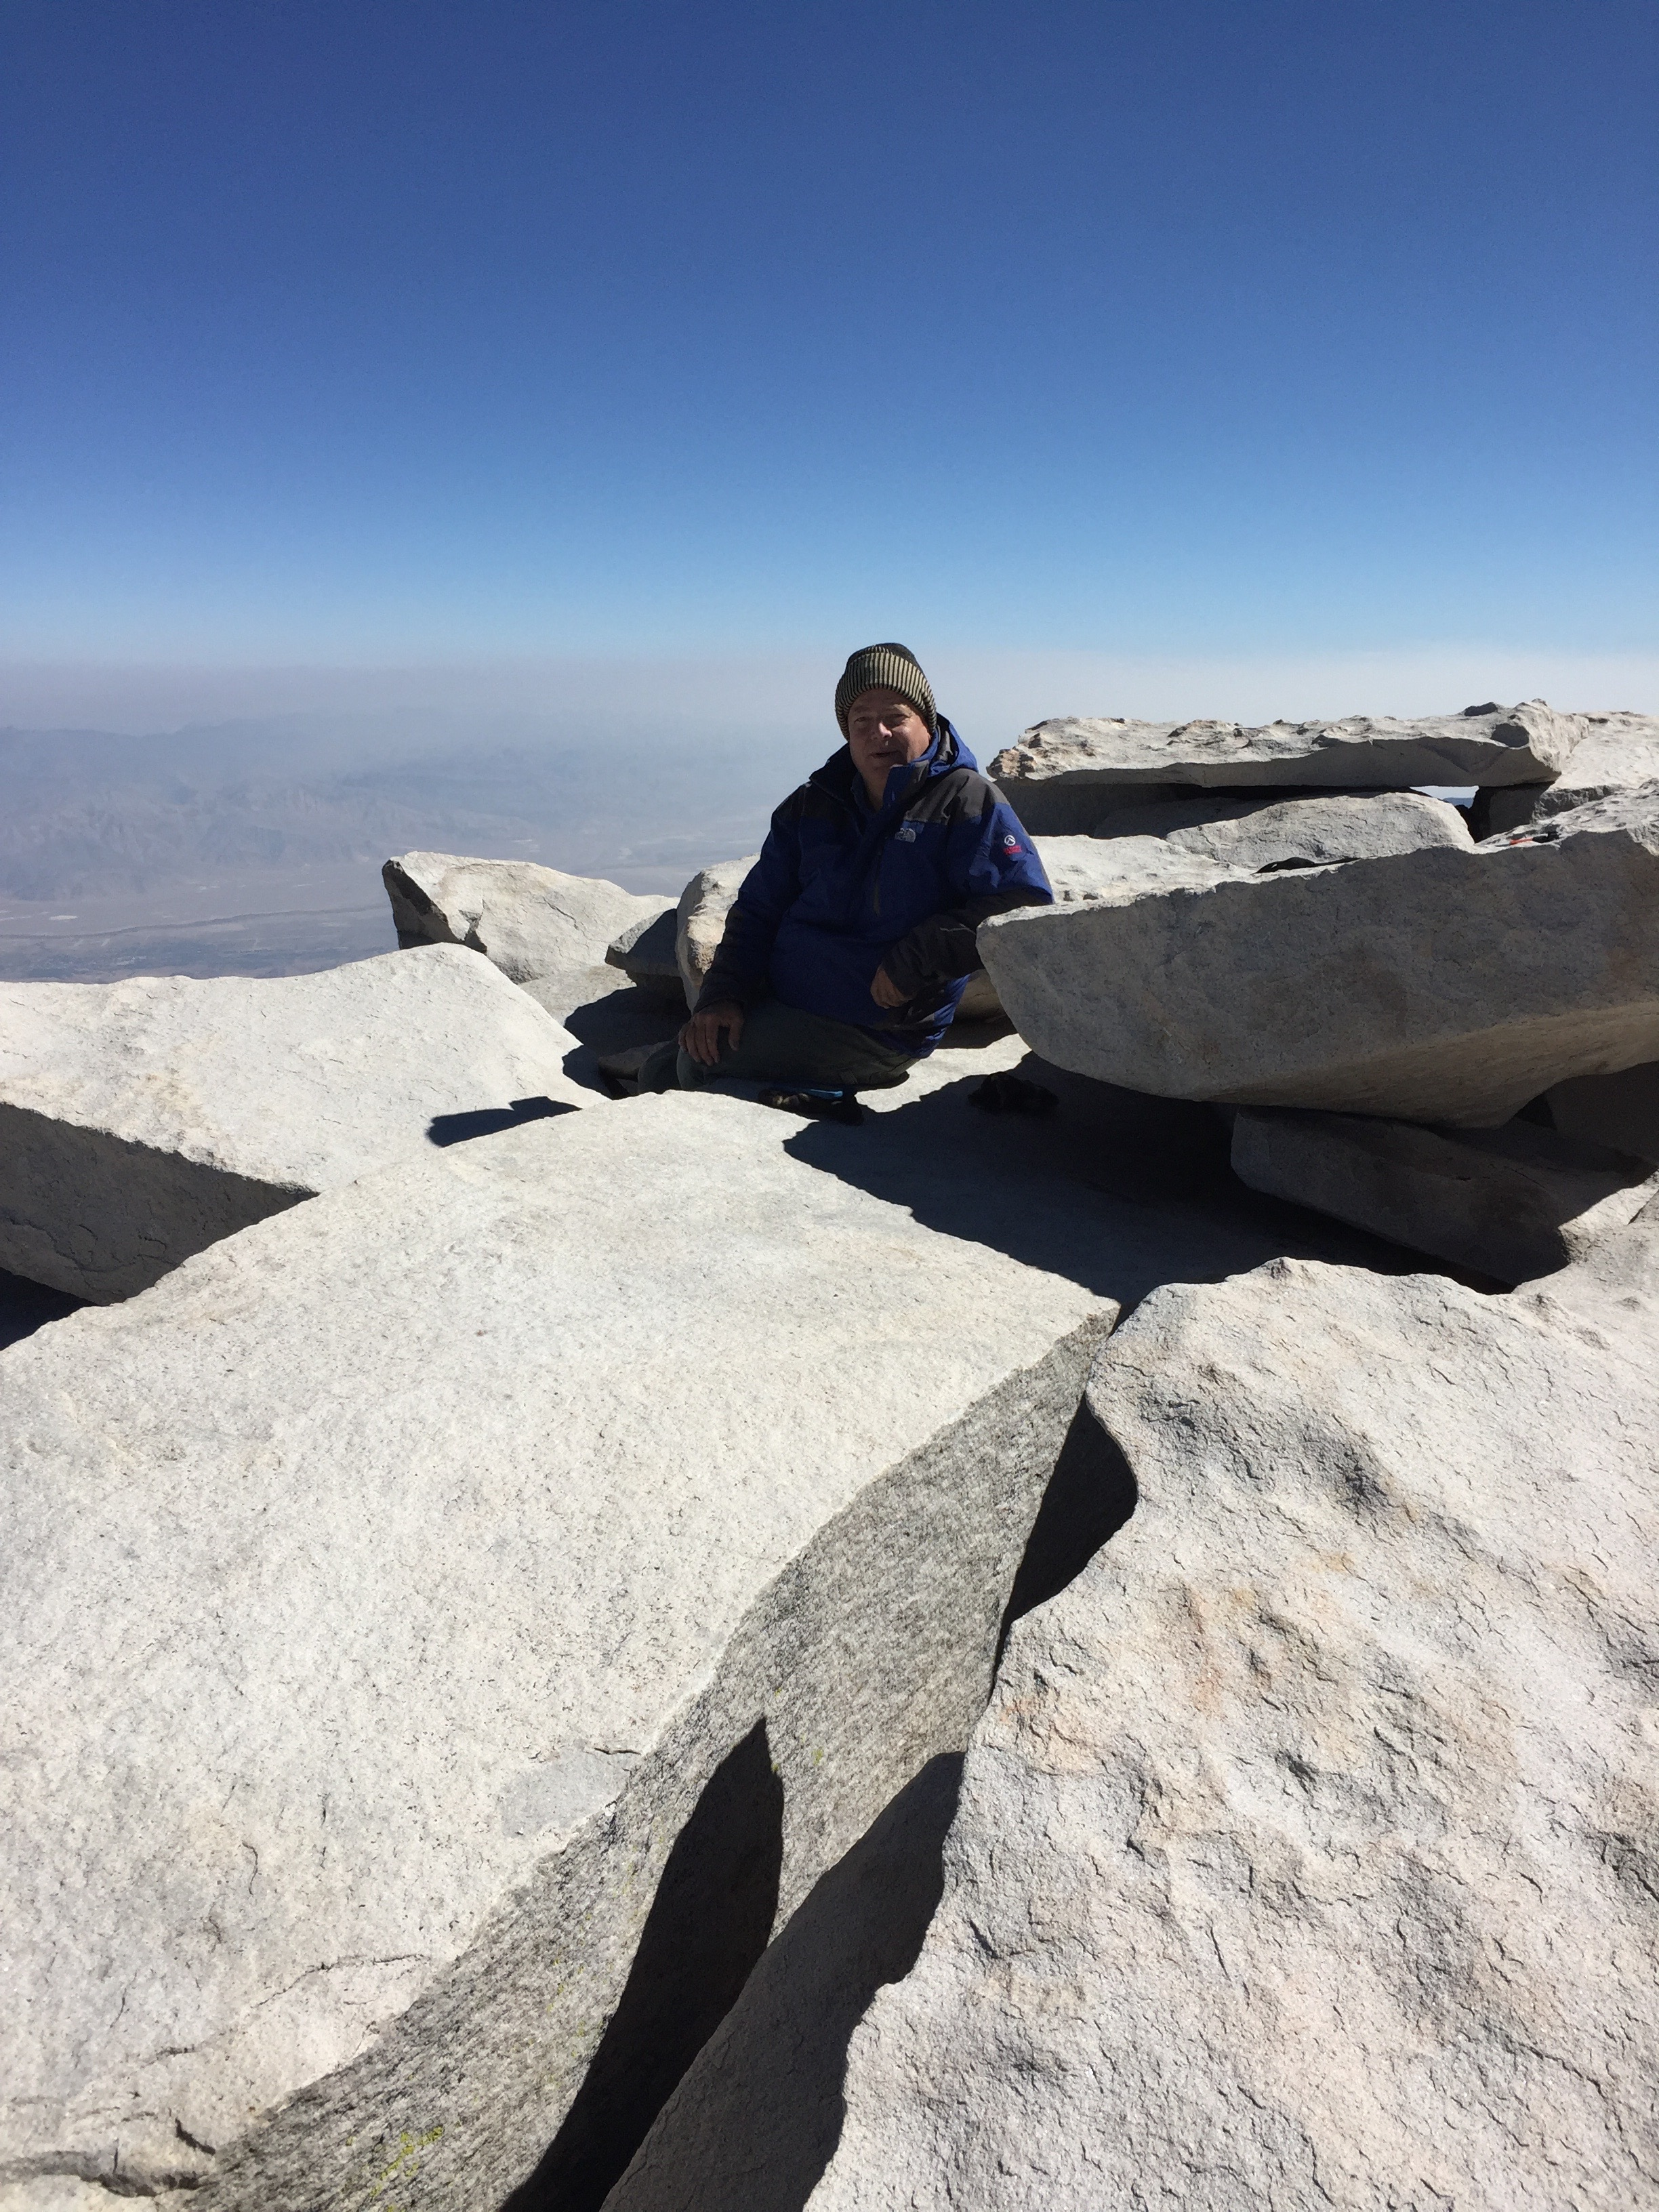 Clay on Mt. Whitney. Photograph by Russ Eagle.